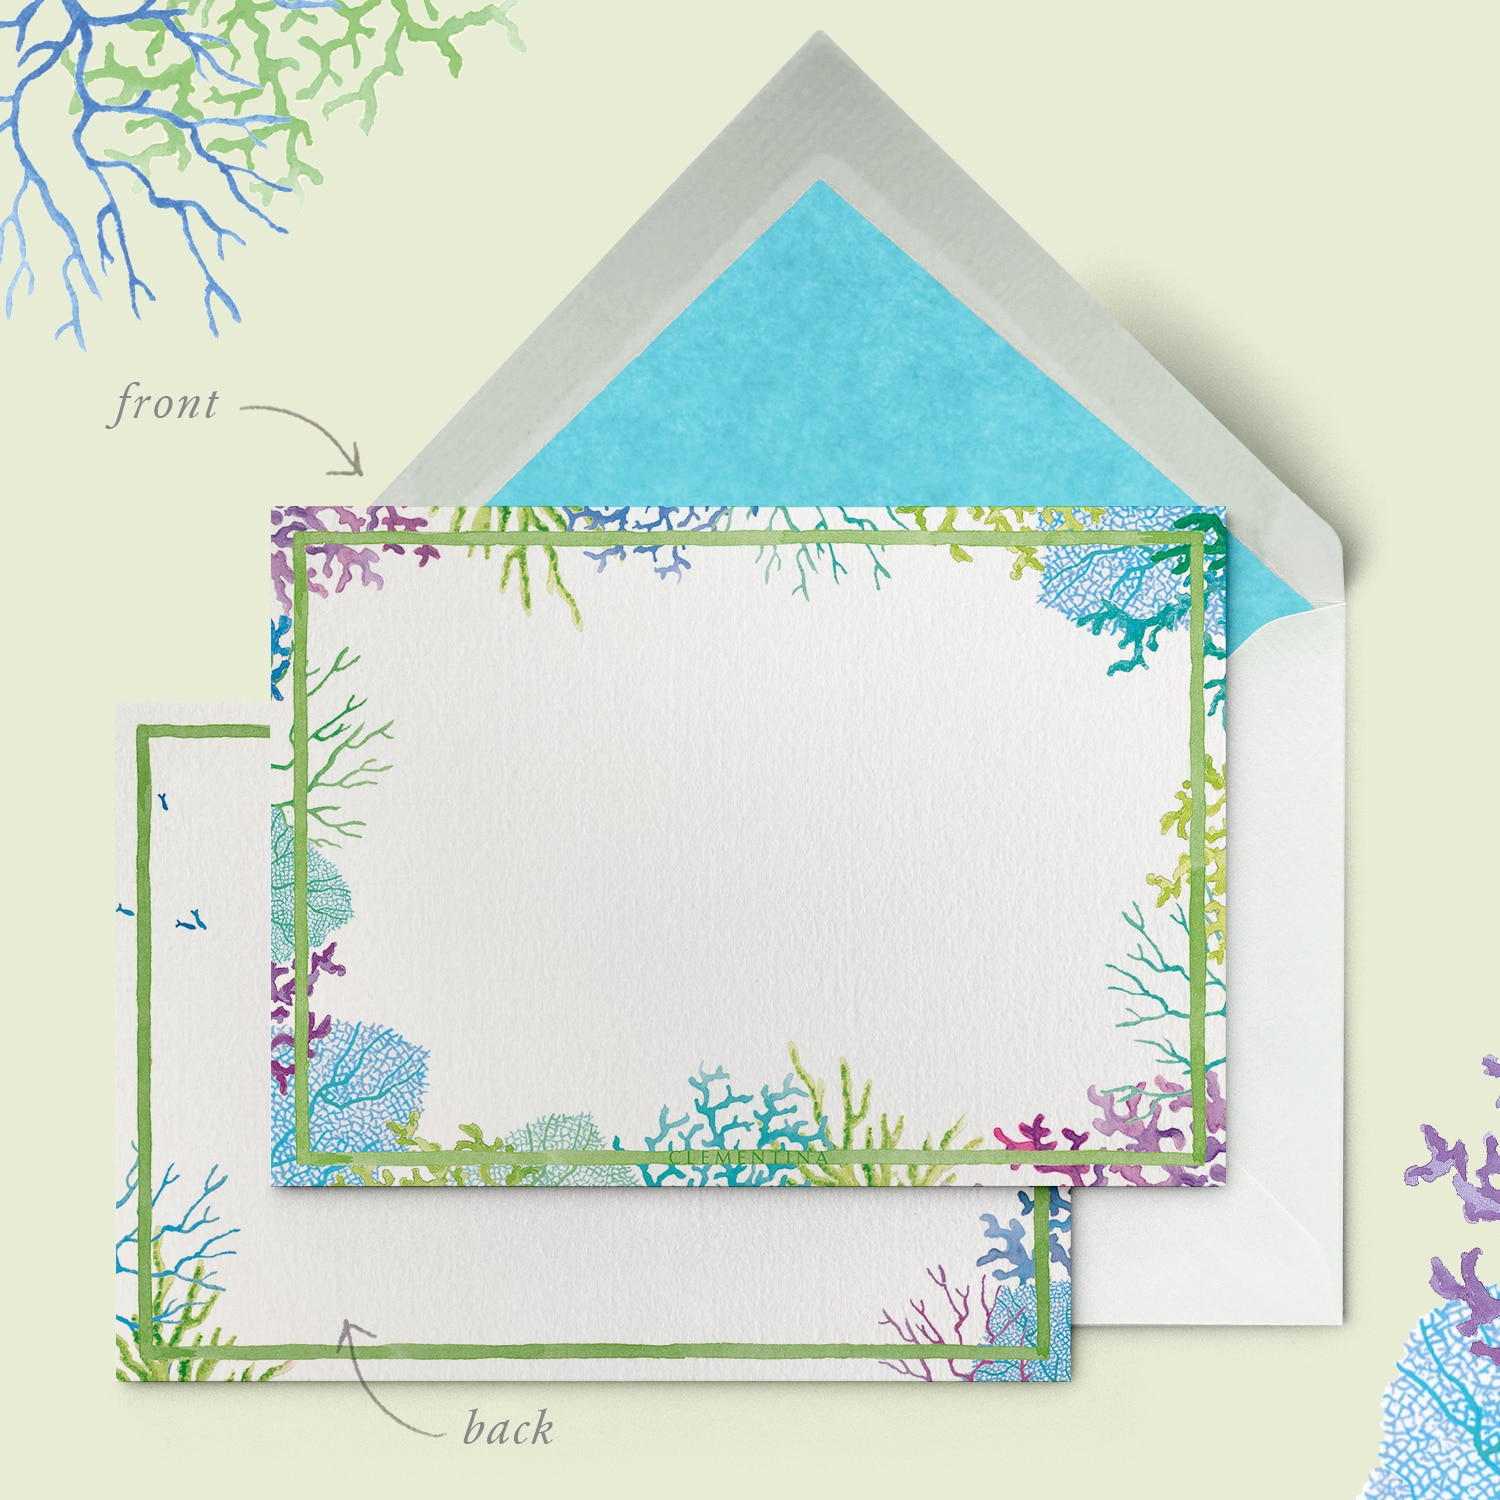 BLUE CORAL REEF STATIONERY CARDS